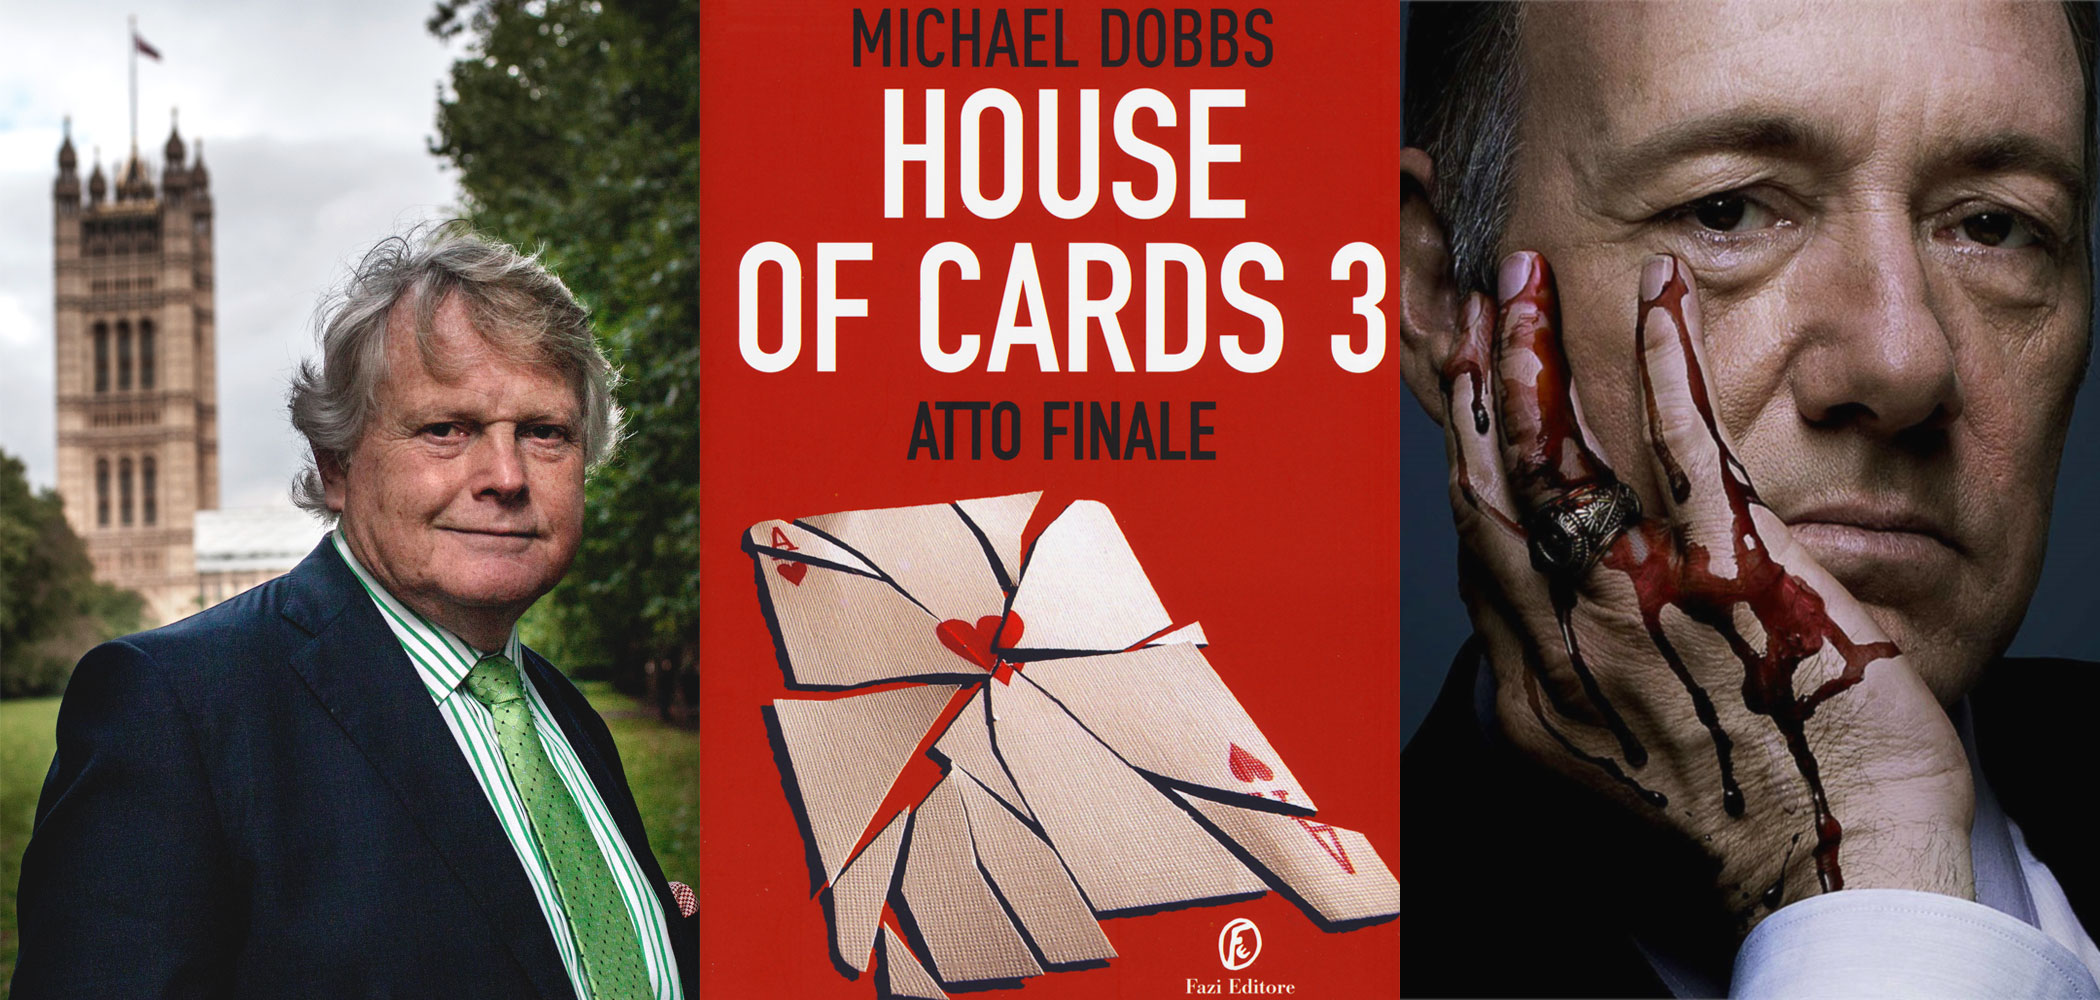 House of cards 3 - libro - Michael Dobbs - Kevin Spacey